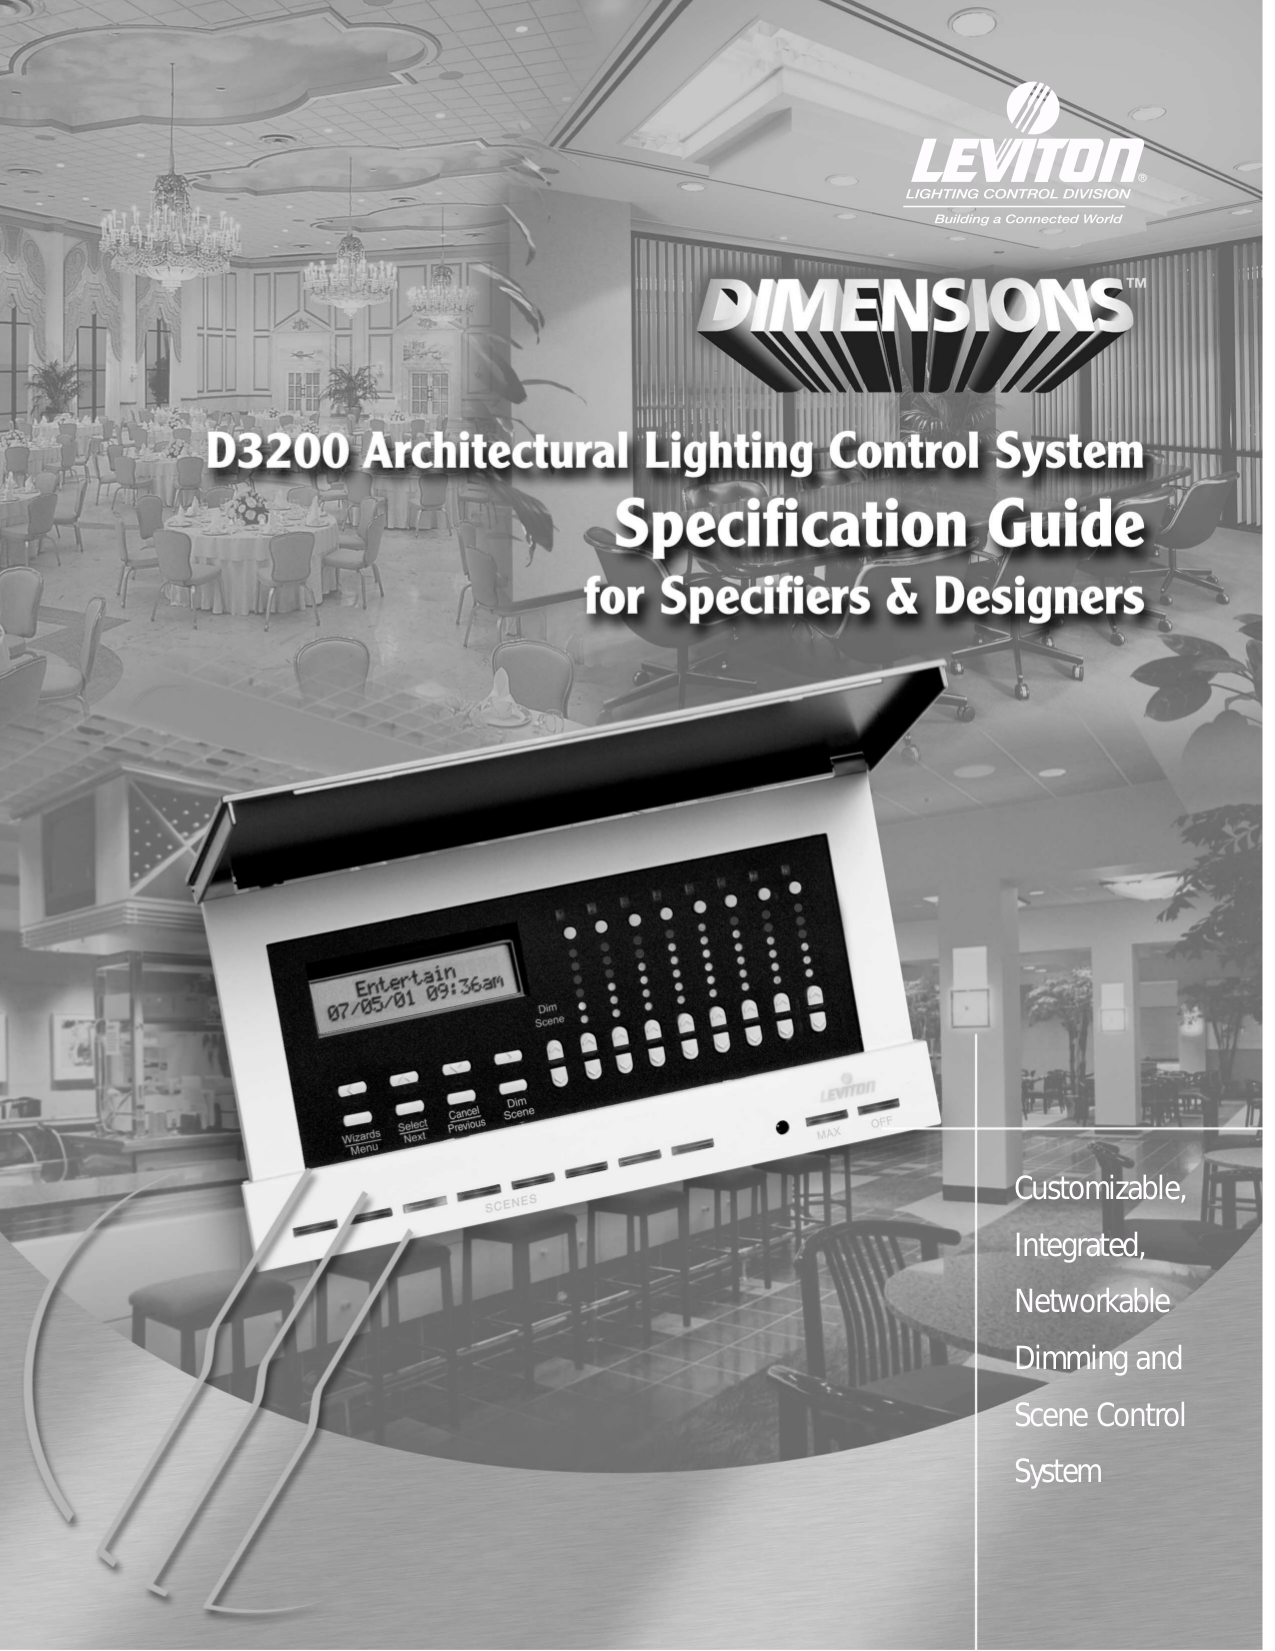 Fine Leviton Lighting Controls Ideas - Electrical and Wiring Diagram ...